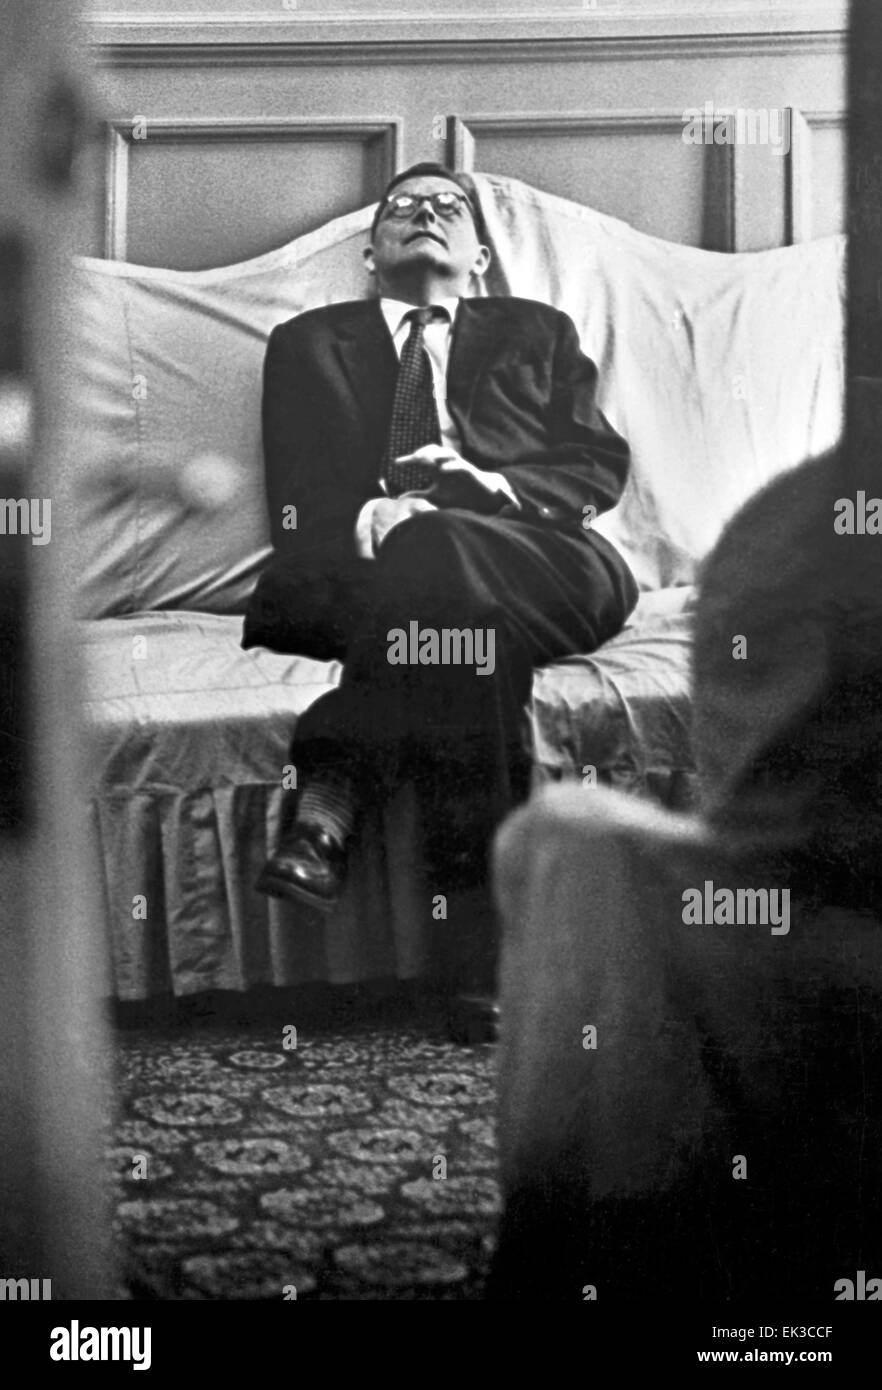 Dmitry Shostakovich sits on a sofa during his symphony premiere. - Stock Image